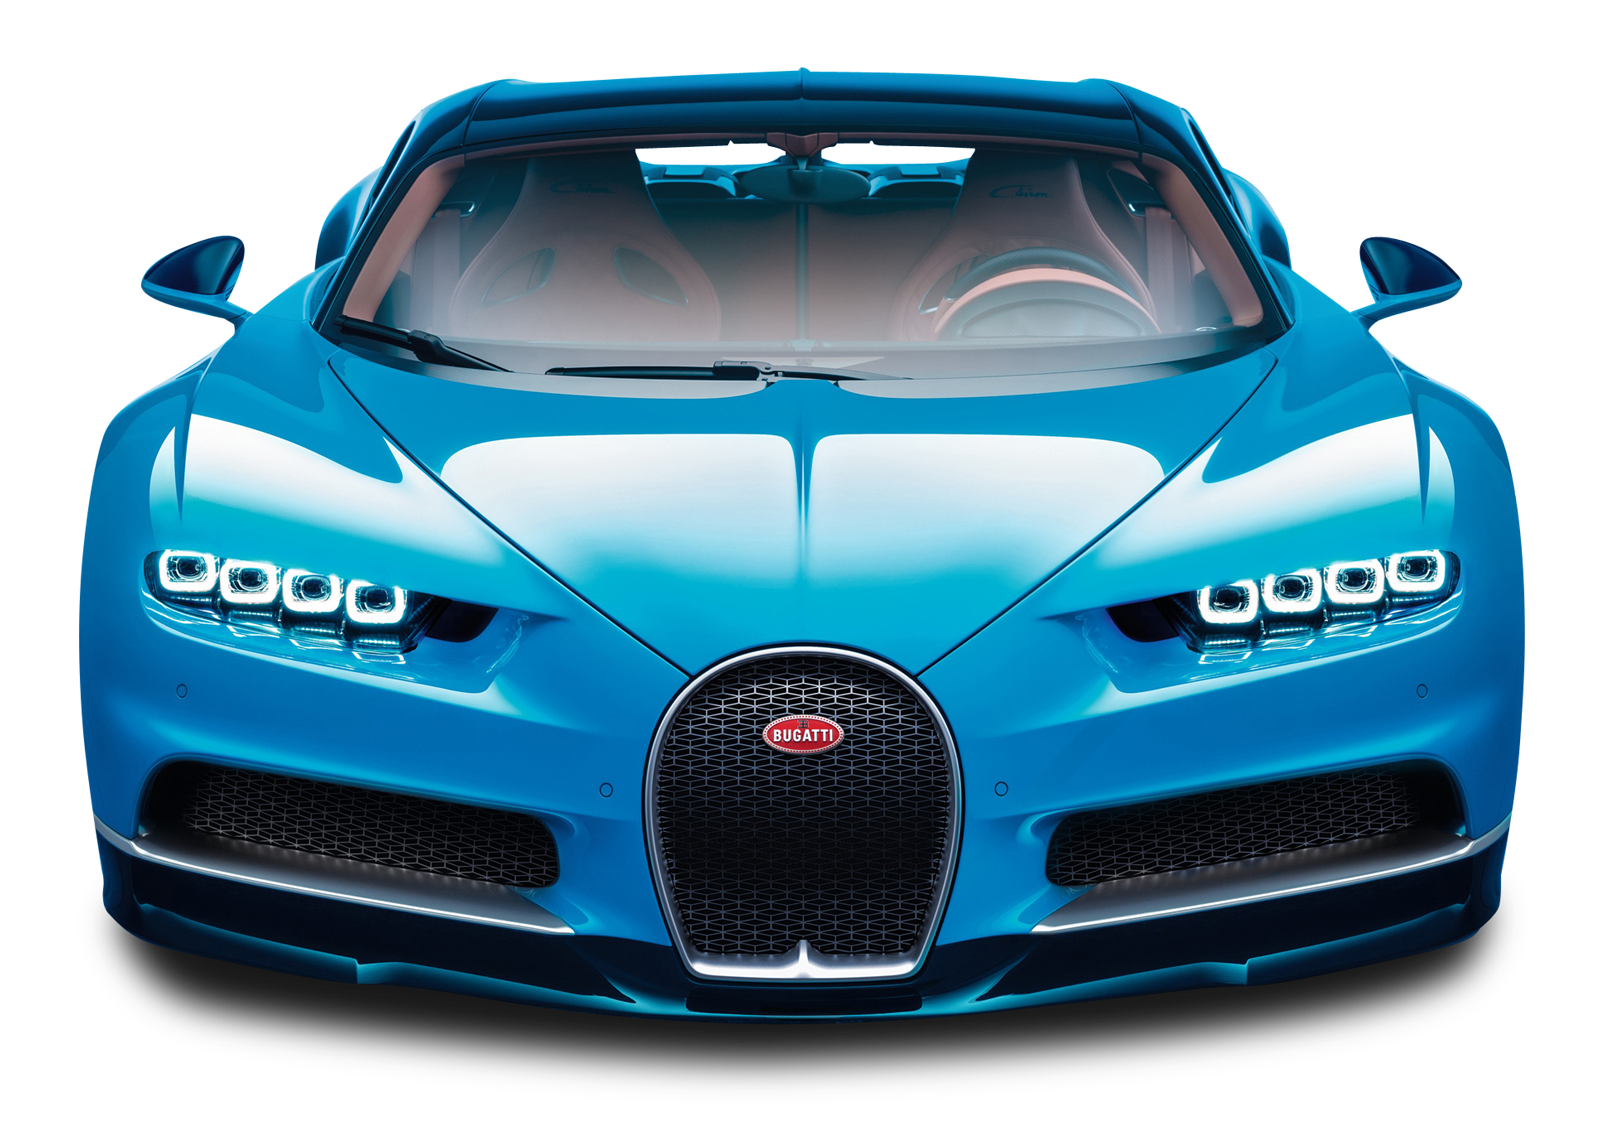 Bugatti Png Image For Free Download